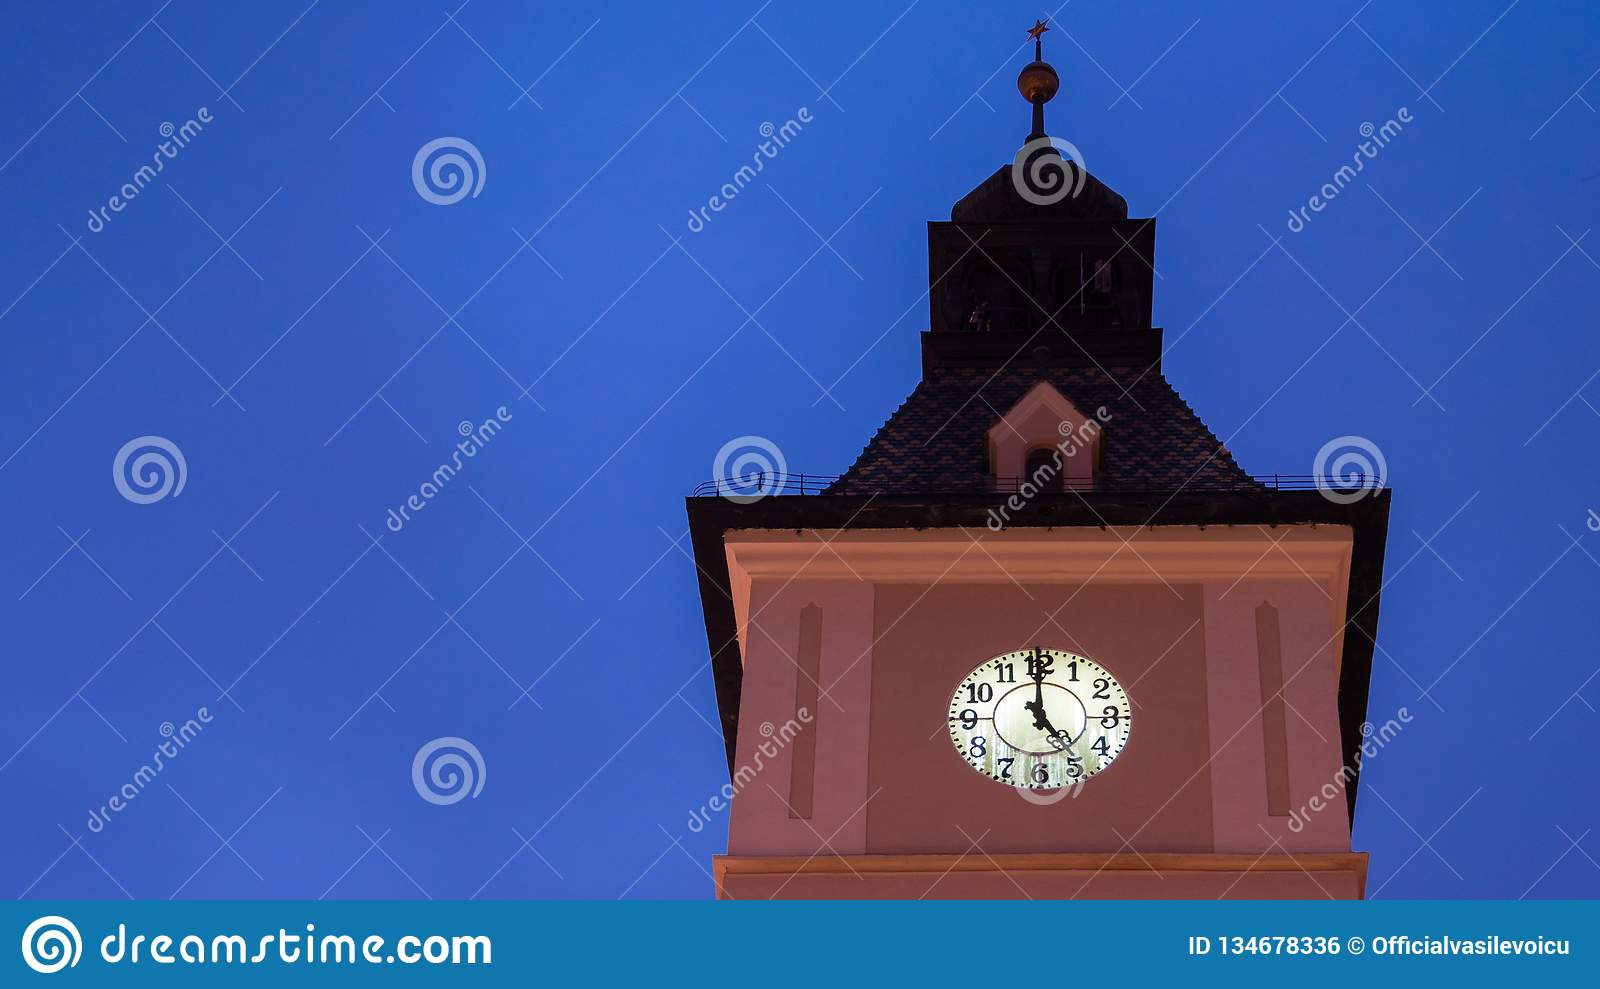 5 oclock on the tower clock under the blue sky